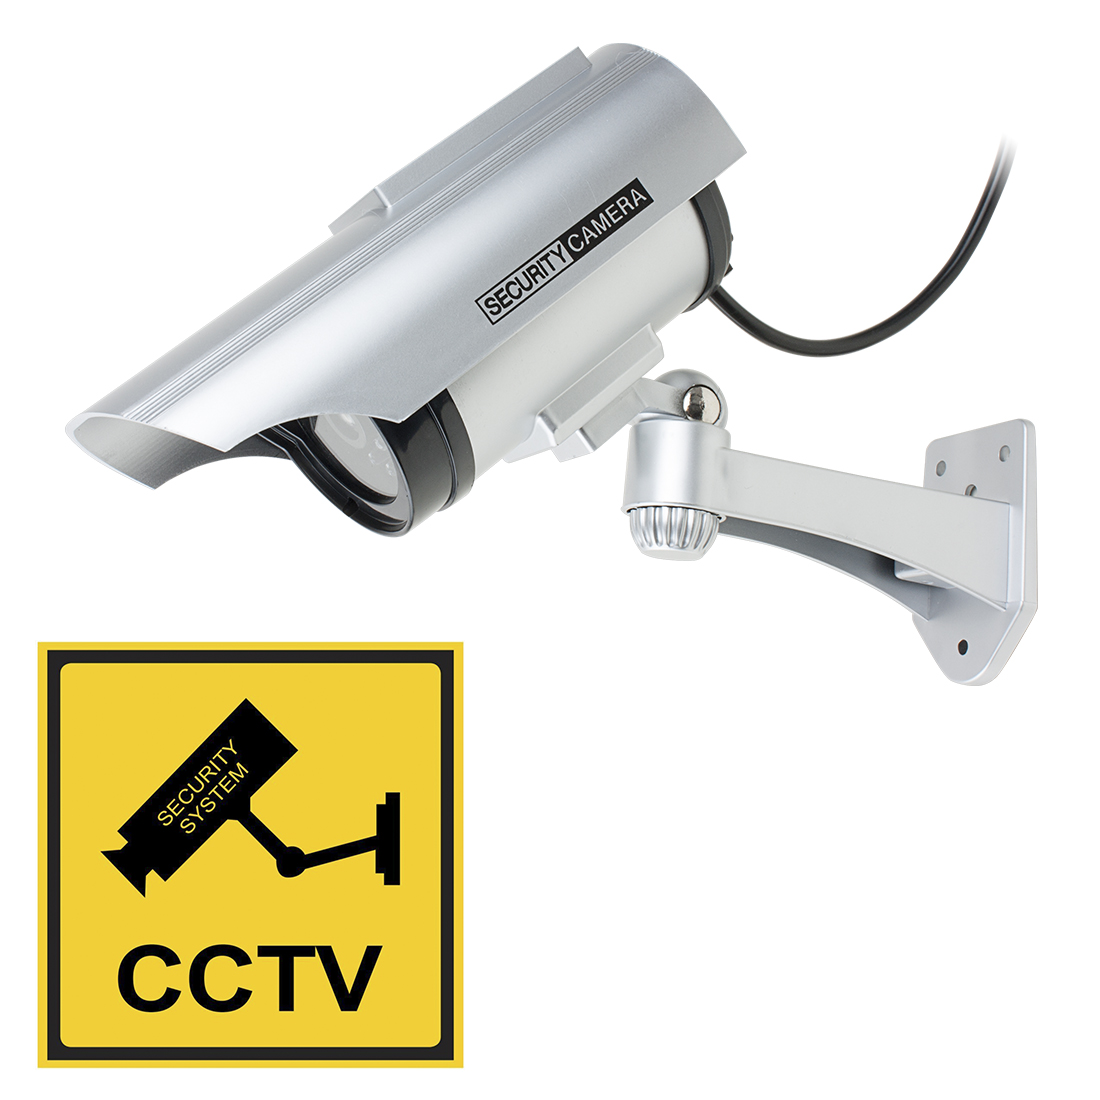 Fake CCTV Dummy Realistic Looking Security Camera Red LED Light Blinking Solar Energy Powered